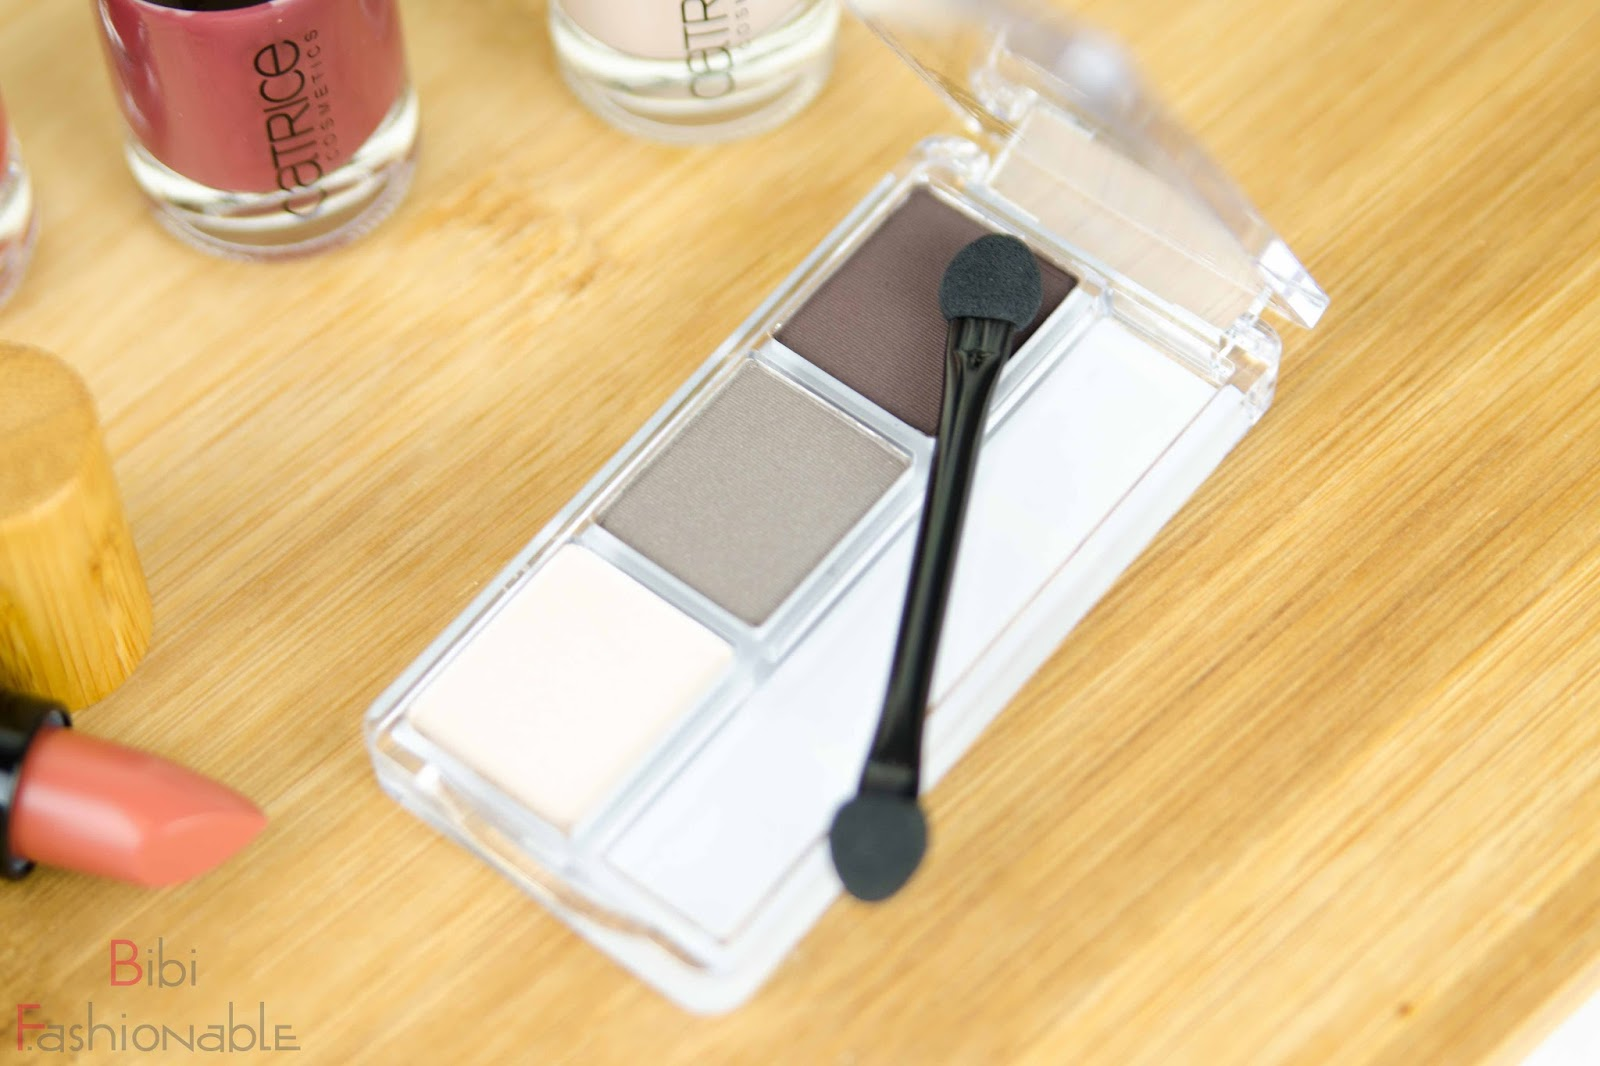 Catrice Limited Edition Neo-Natured Eye Shadow